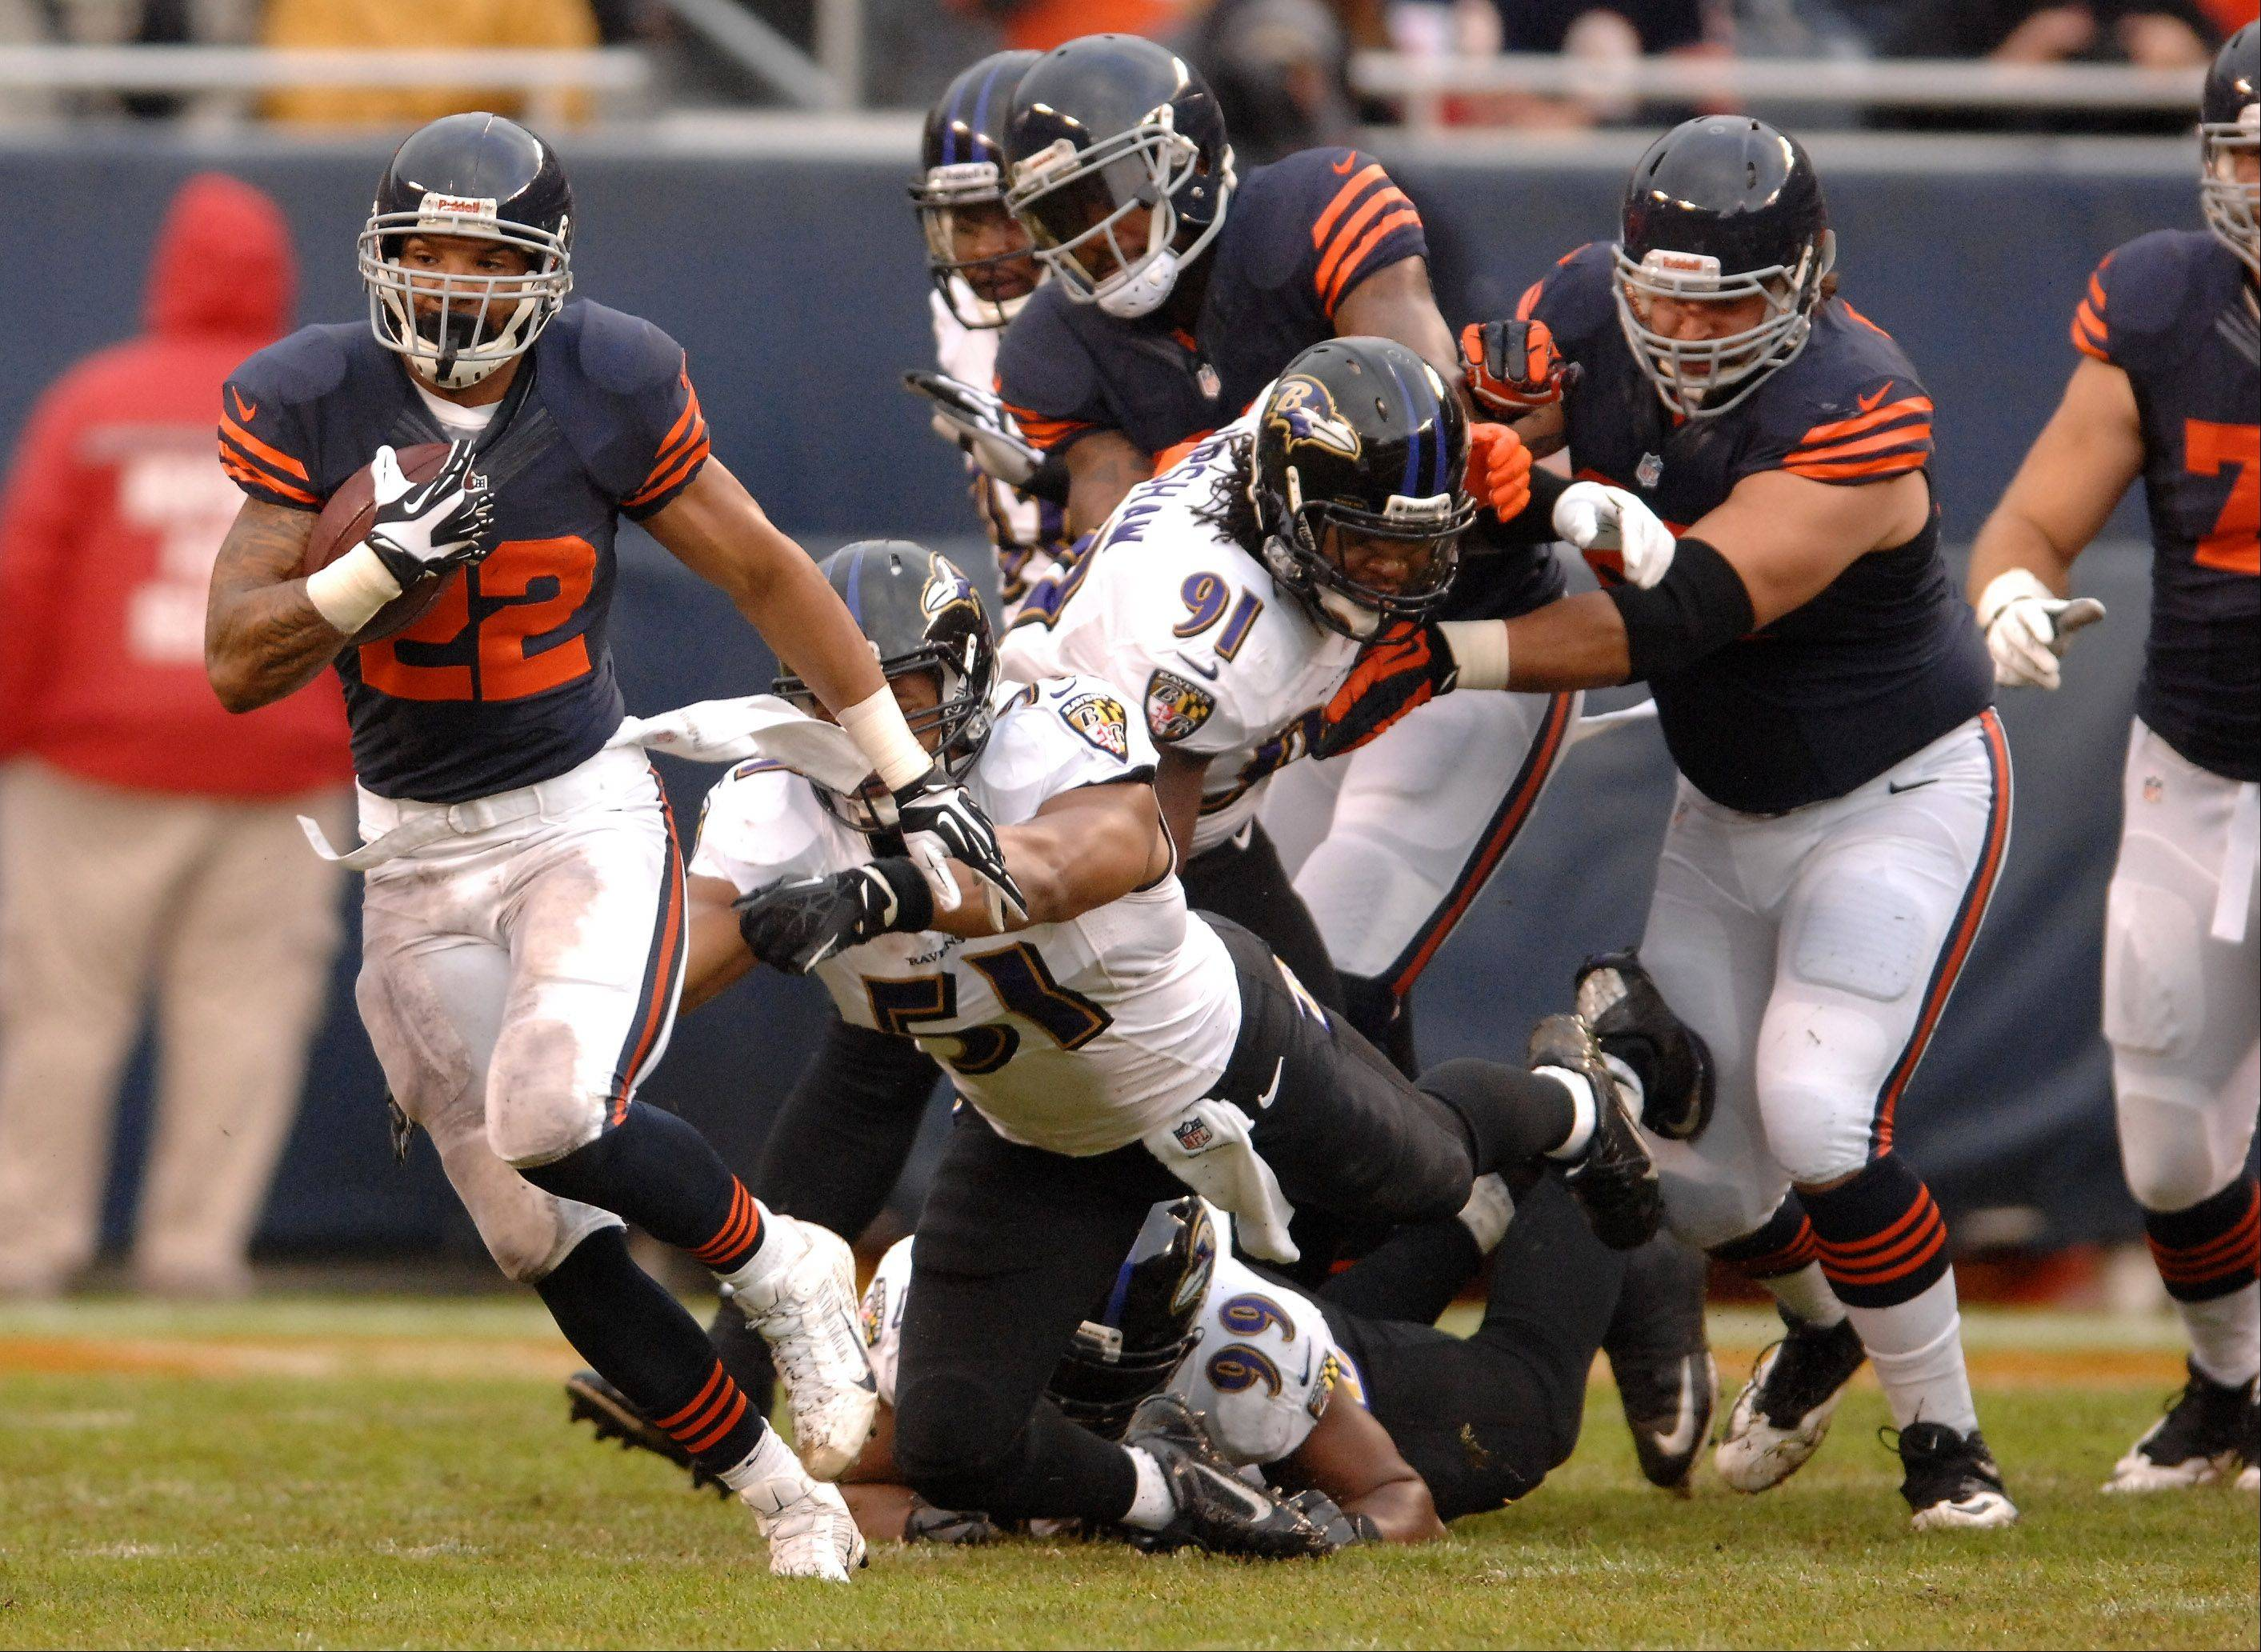 Chicago Bears running back Matt Forte (22) breaks a run to the outside during Sunday's game in Chicago.